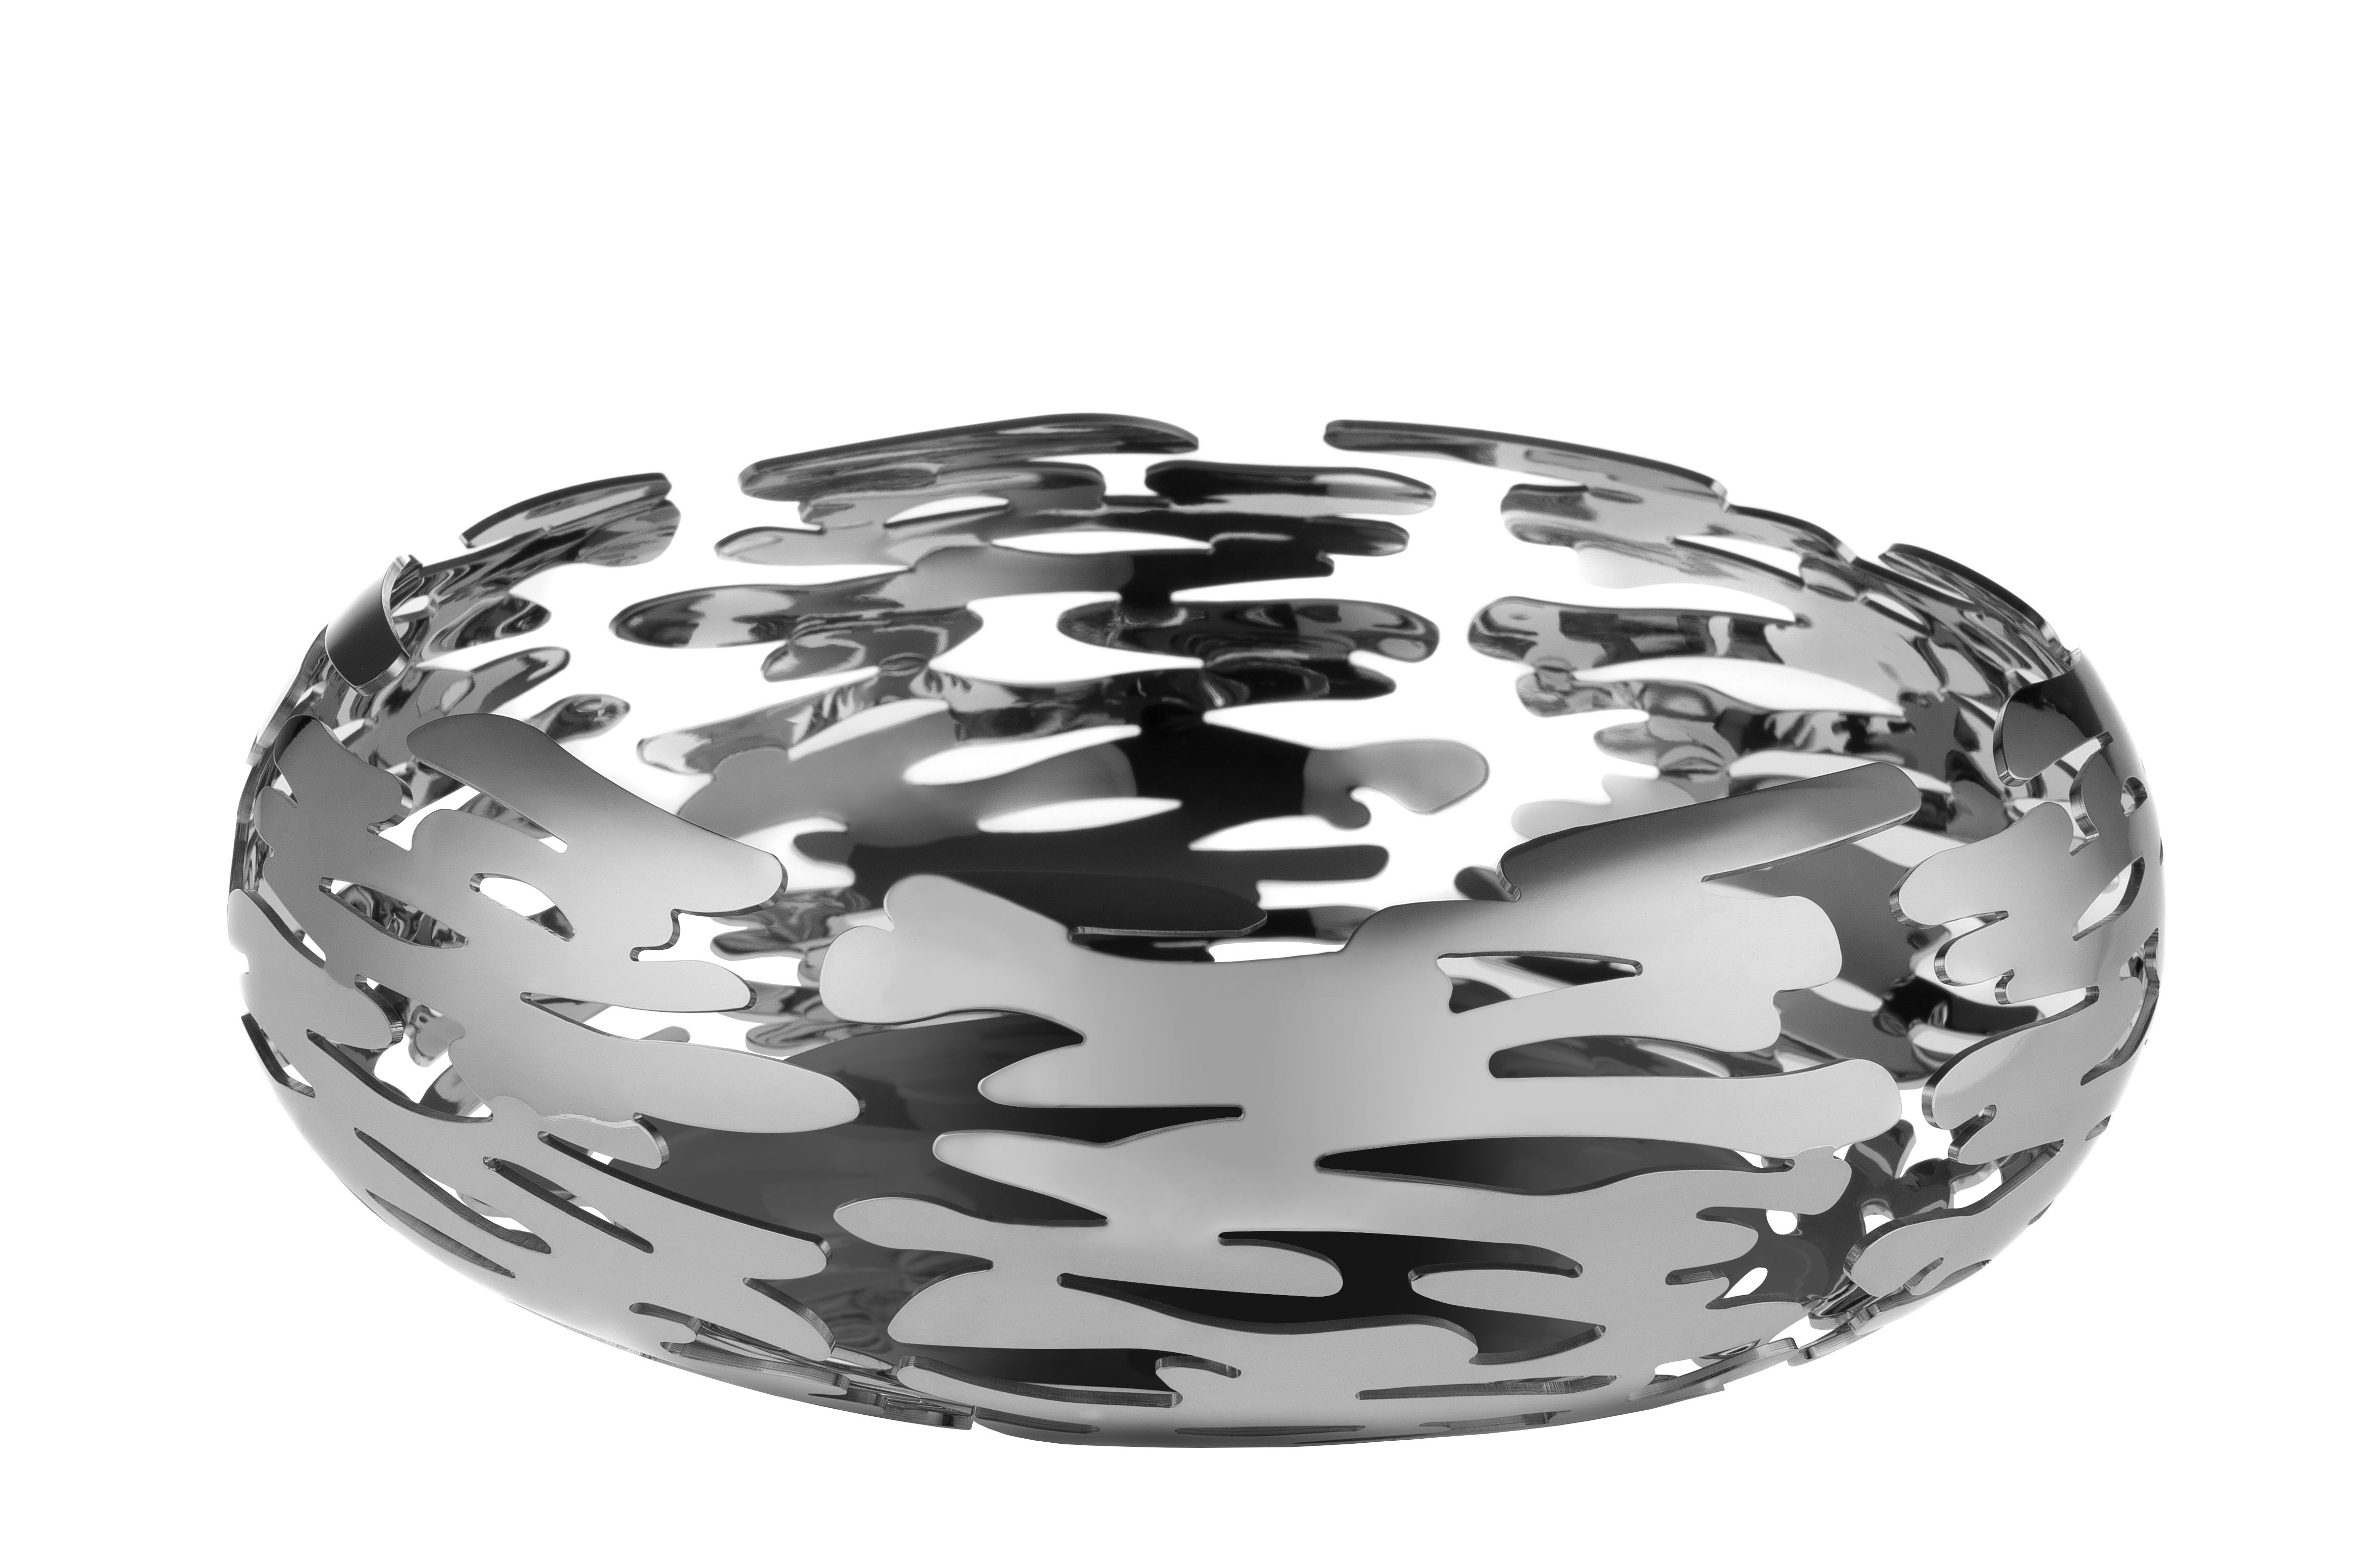 Tableware - Fruit Bowls & Centrepieces - Barknest Basket by Alessi - Steel - Stainless steel